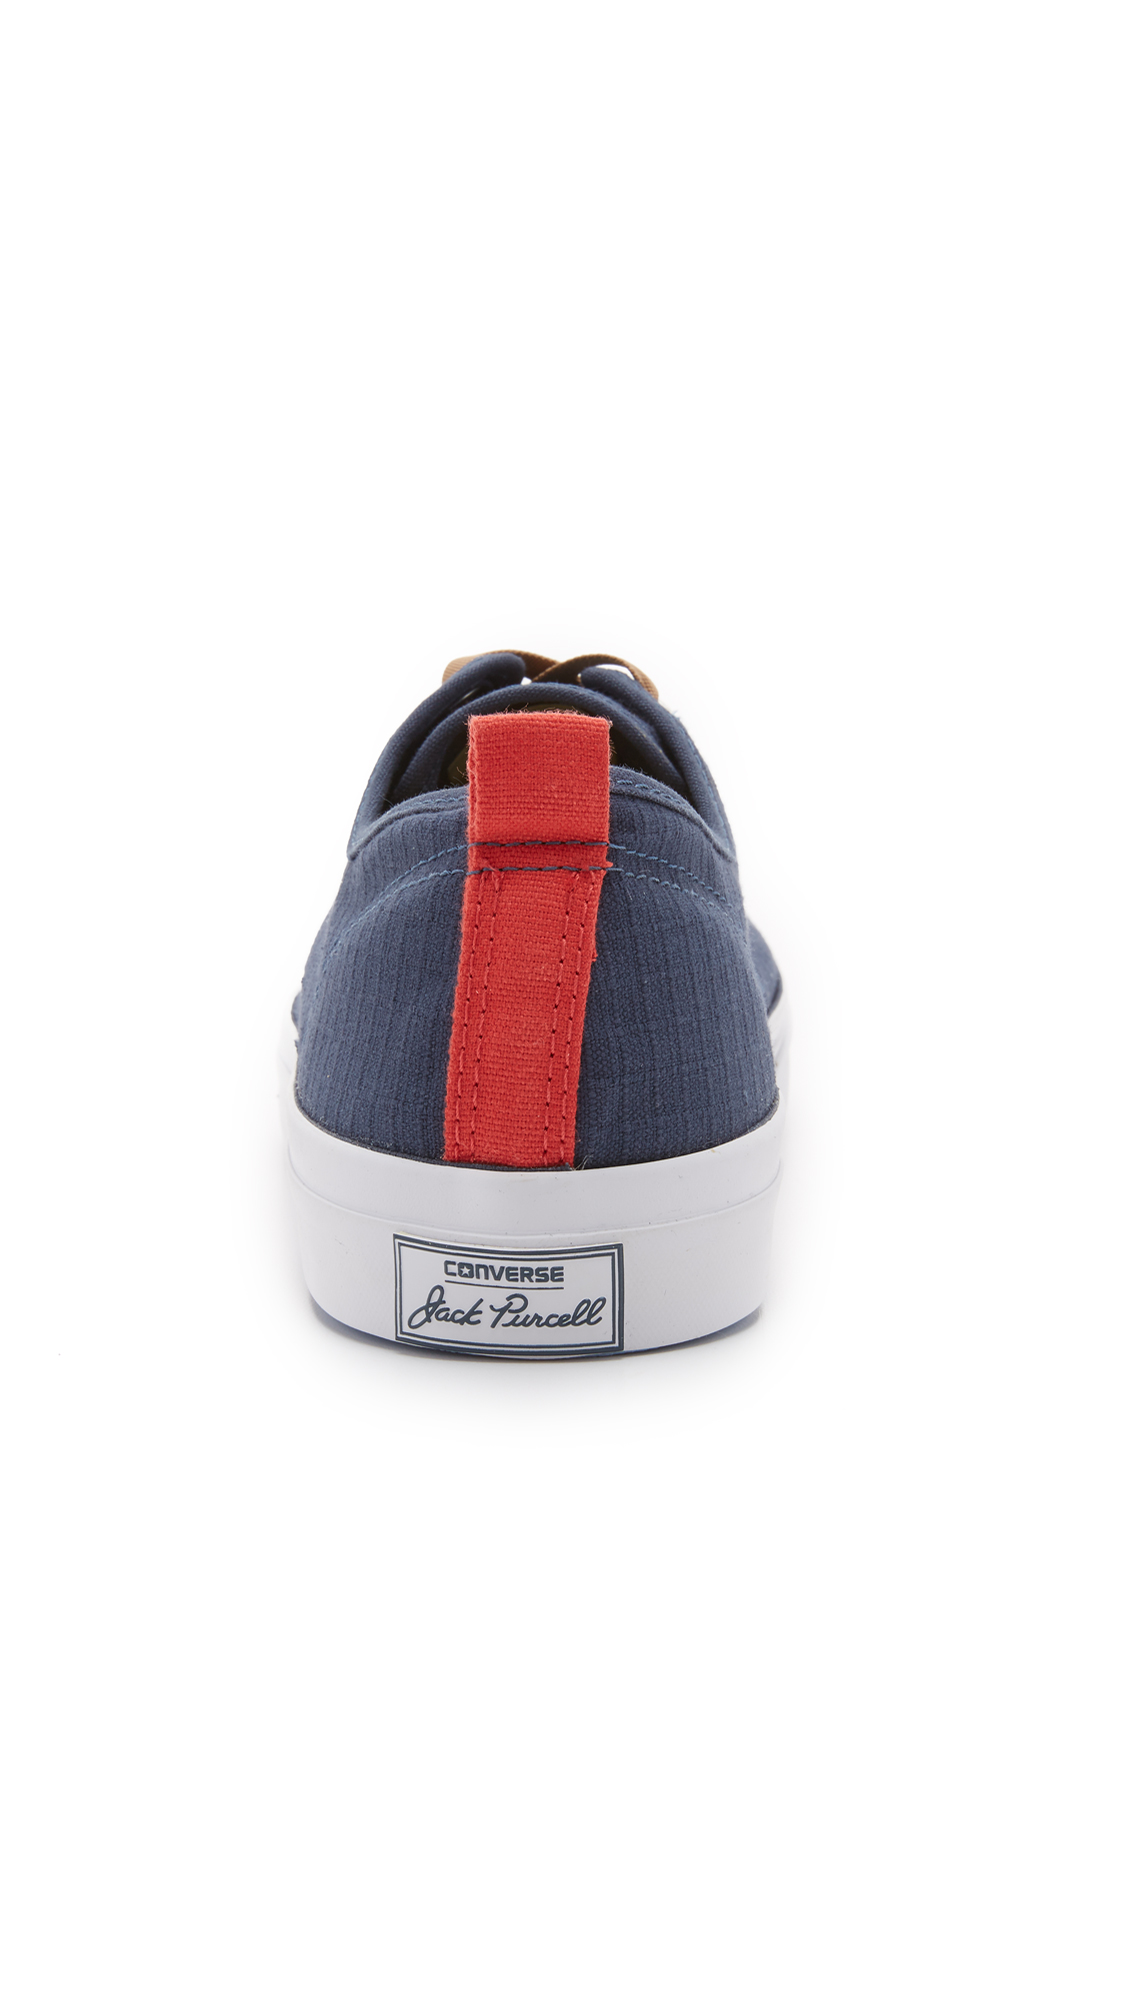 56932af35110 Converse Jack Purcell Jack Ripstop Sneakers